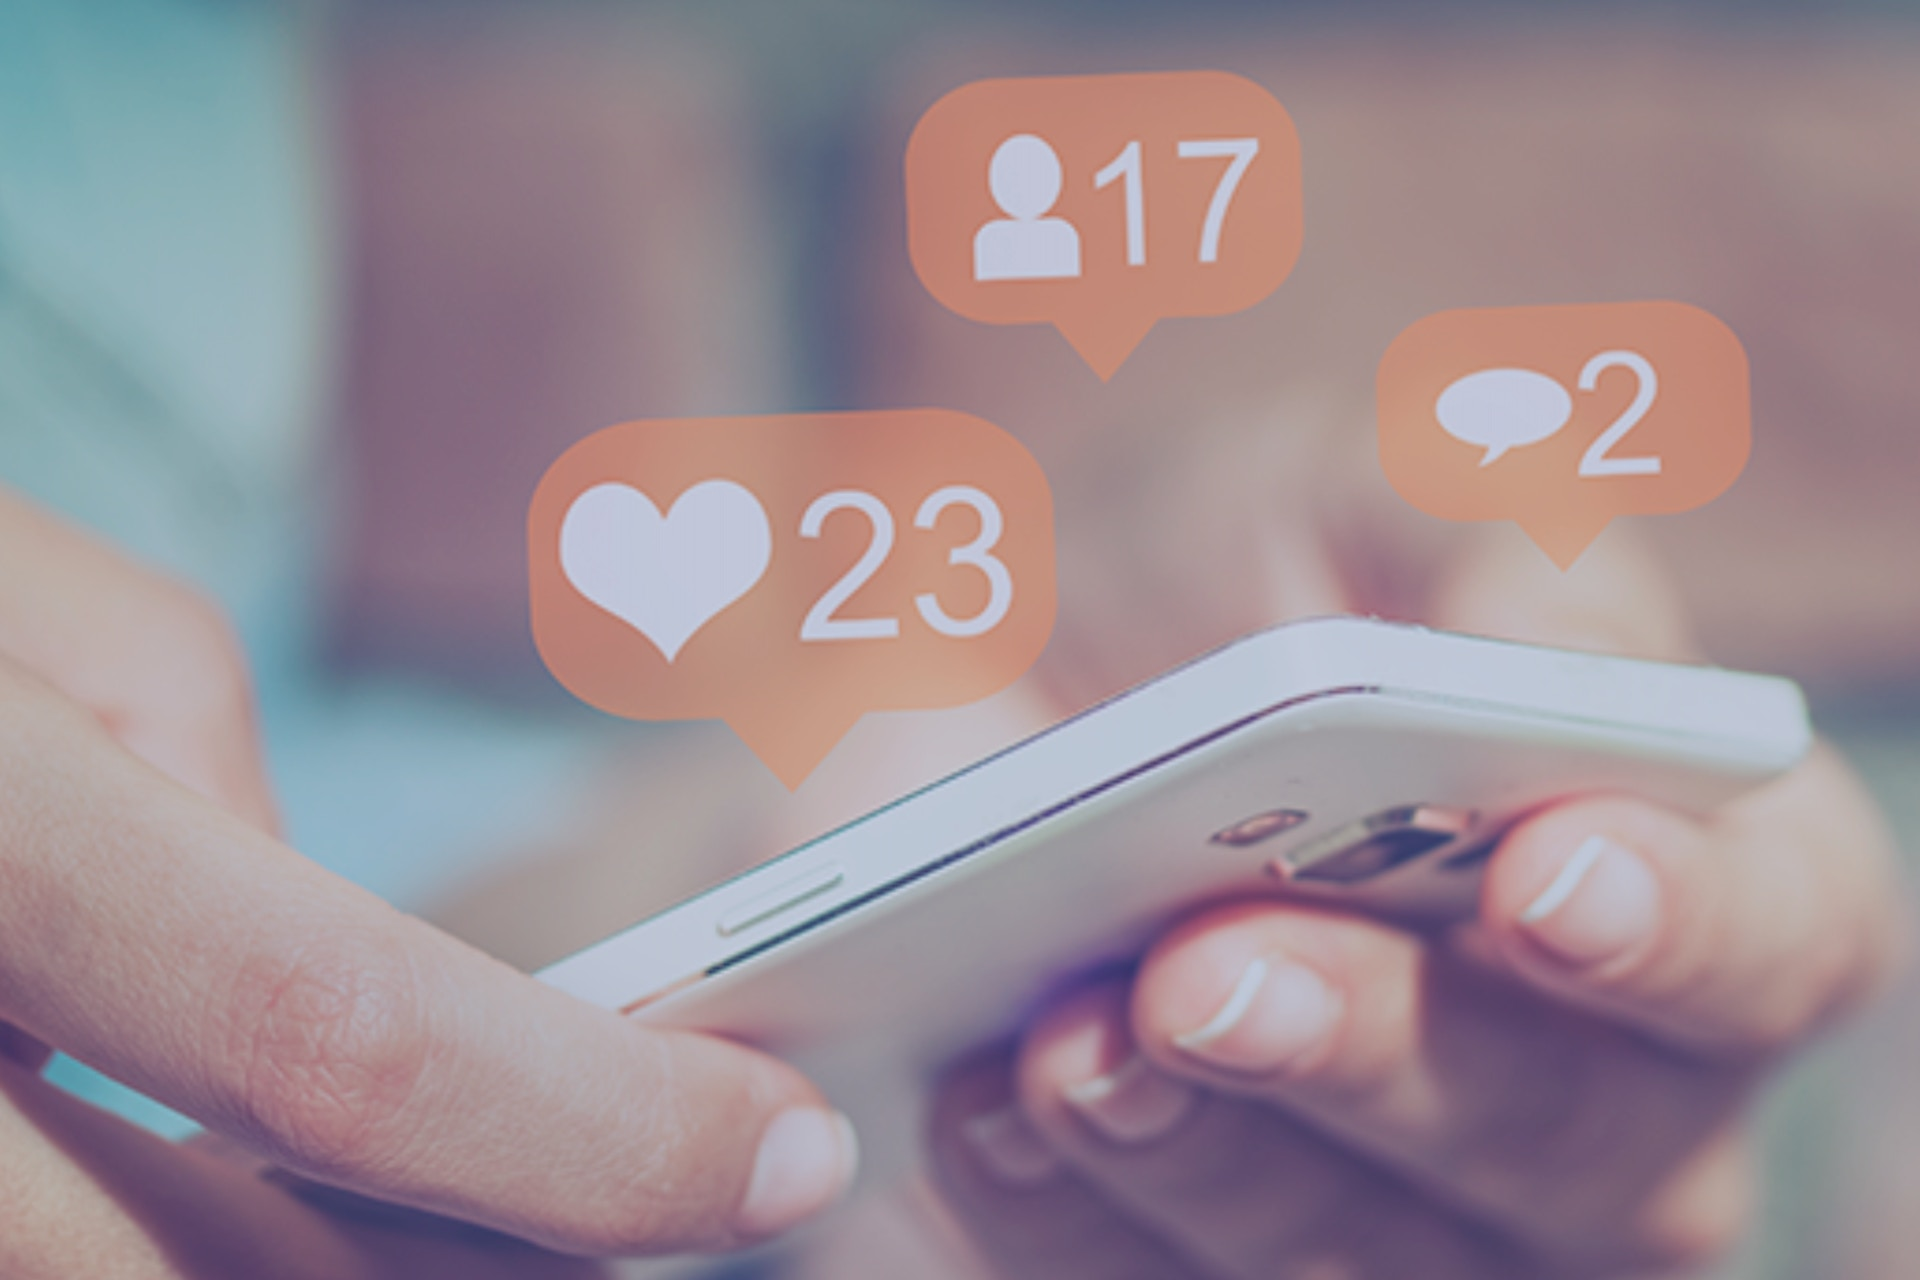 click through rates likes smartphone